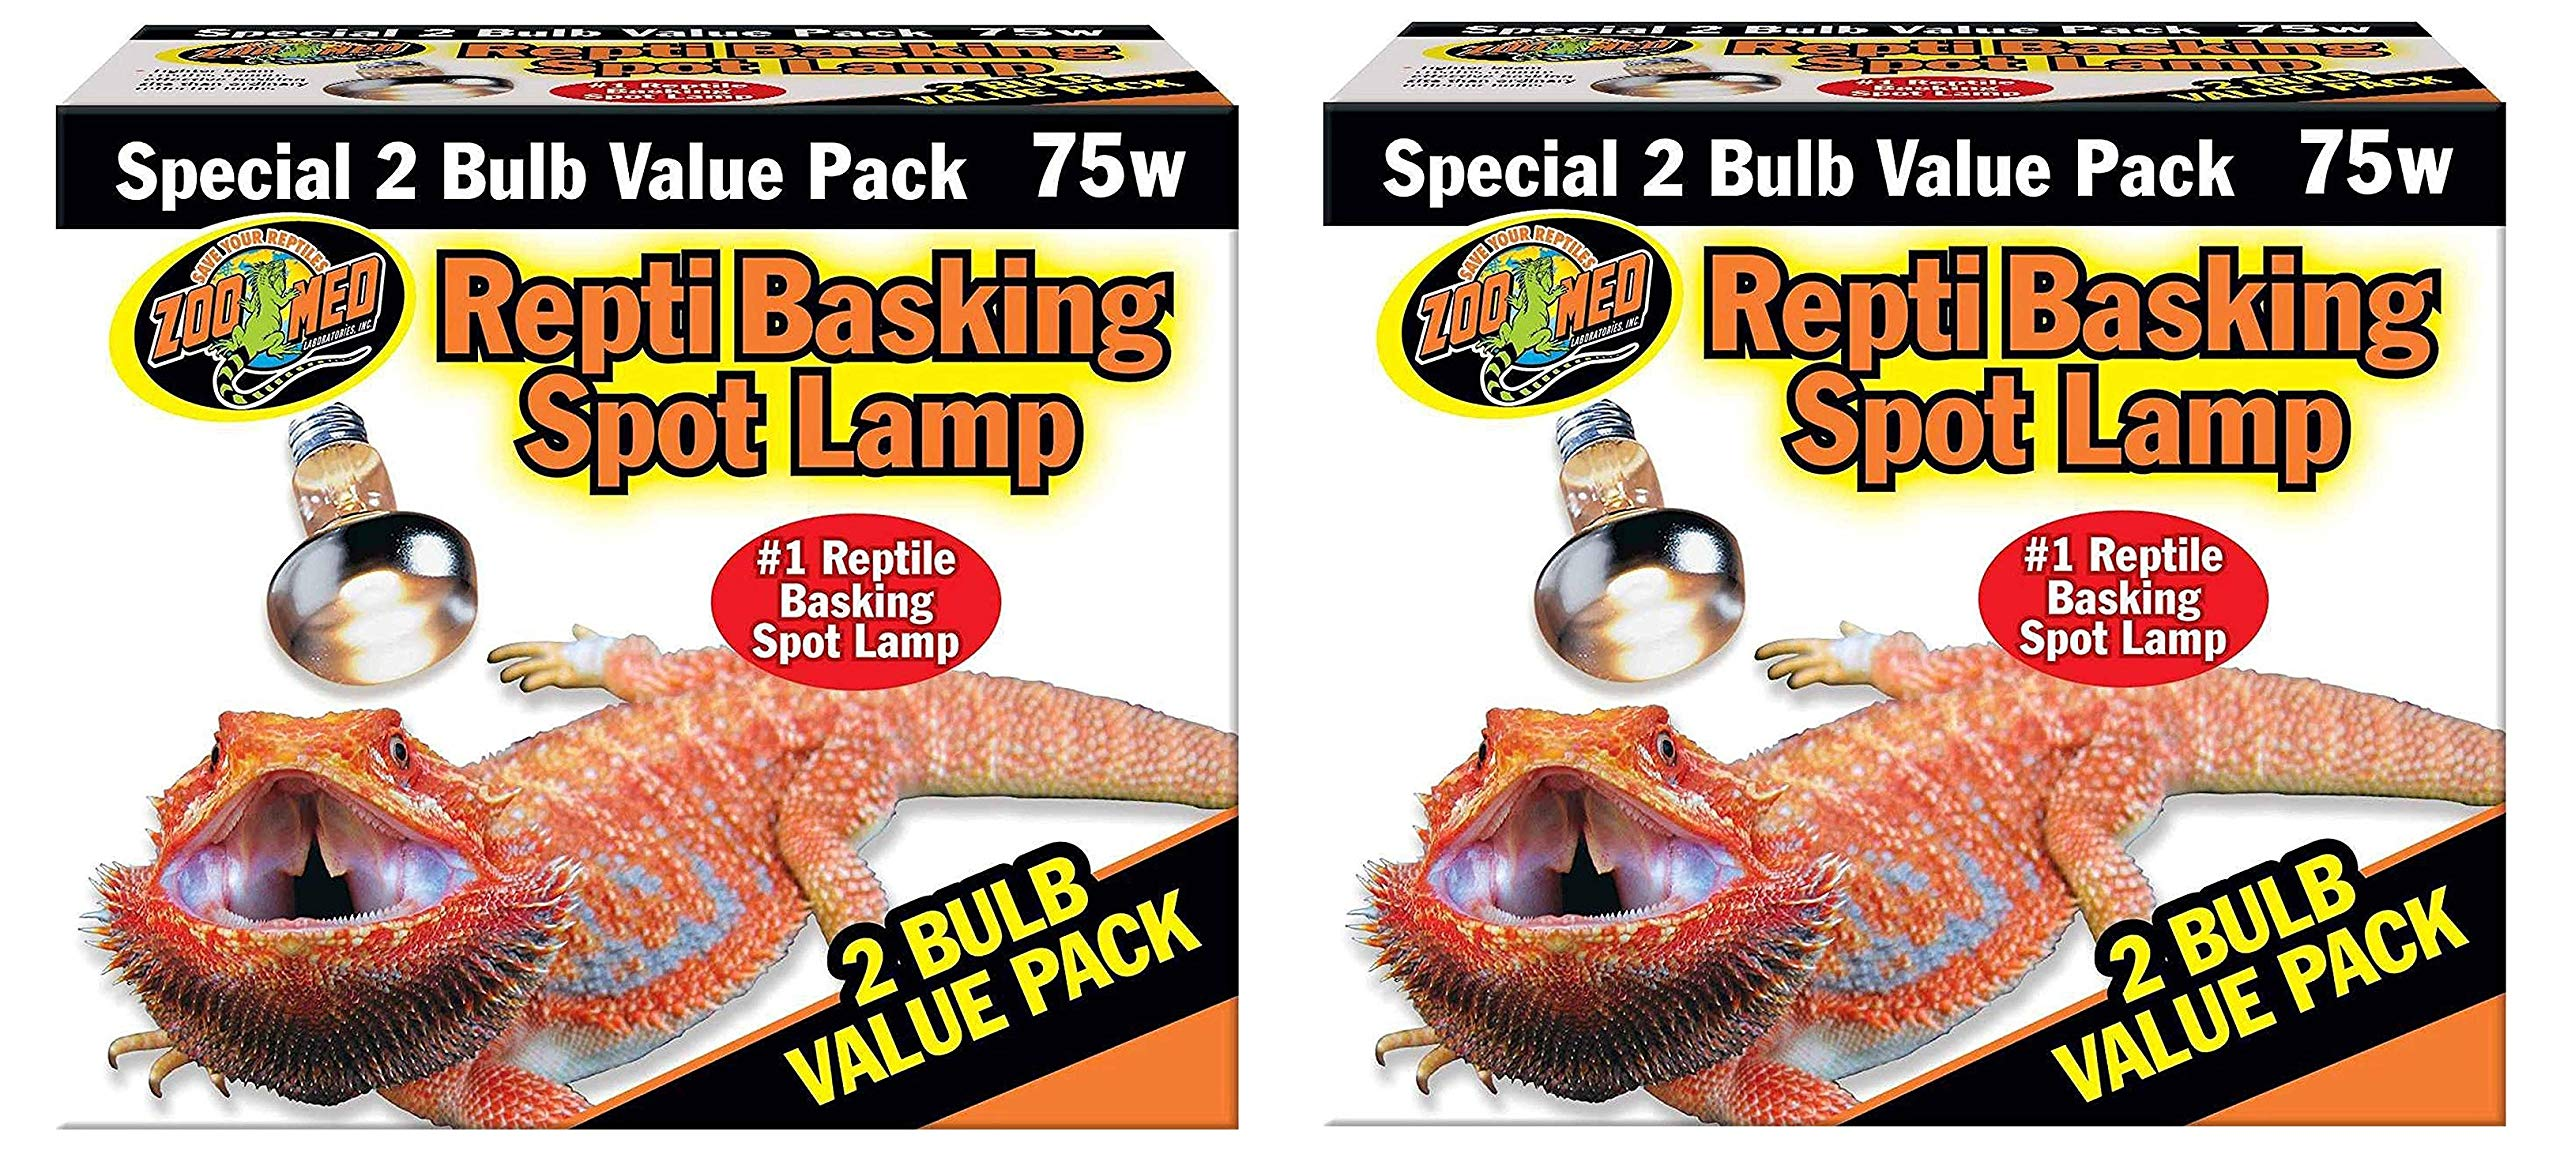 Zoo Med 4 Pack of Repti Basking Spot Lamp, 74 Watts, for Reptile Terrariums by Zoo Med